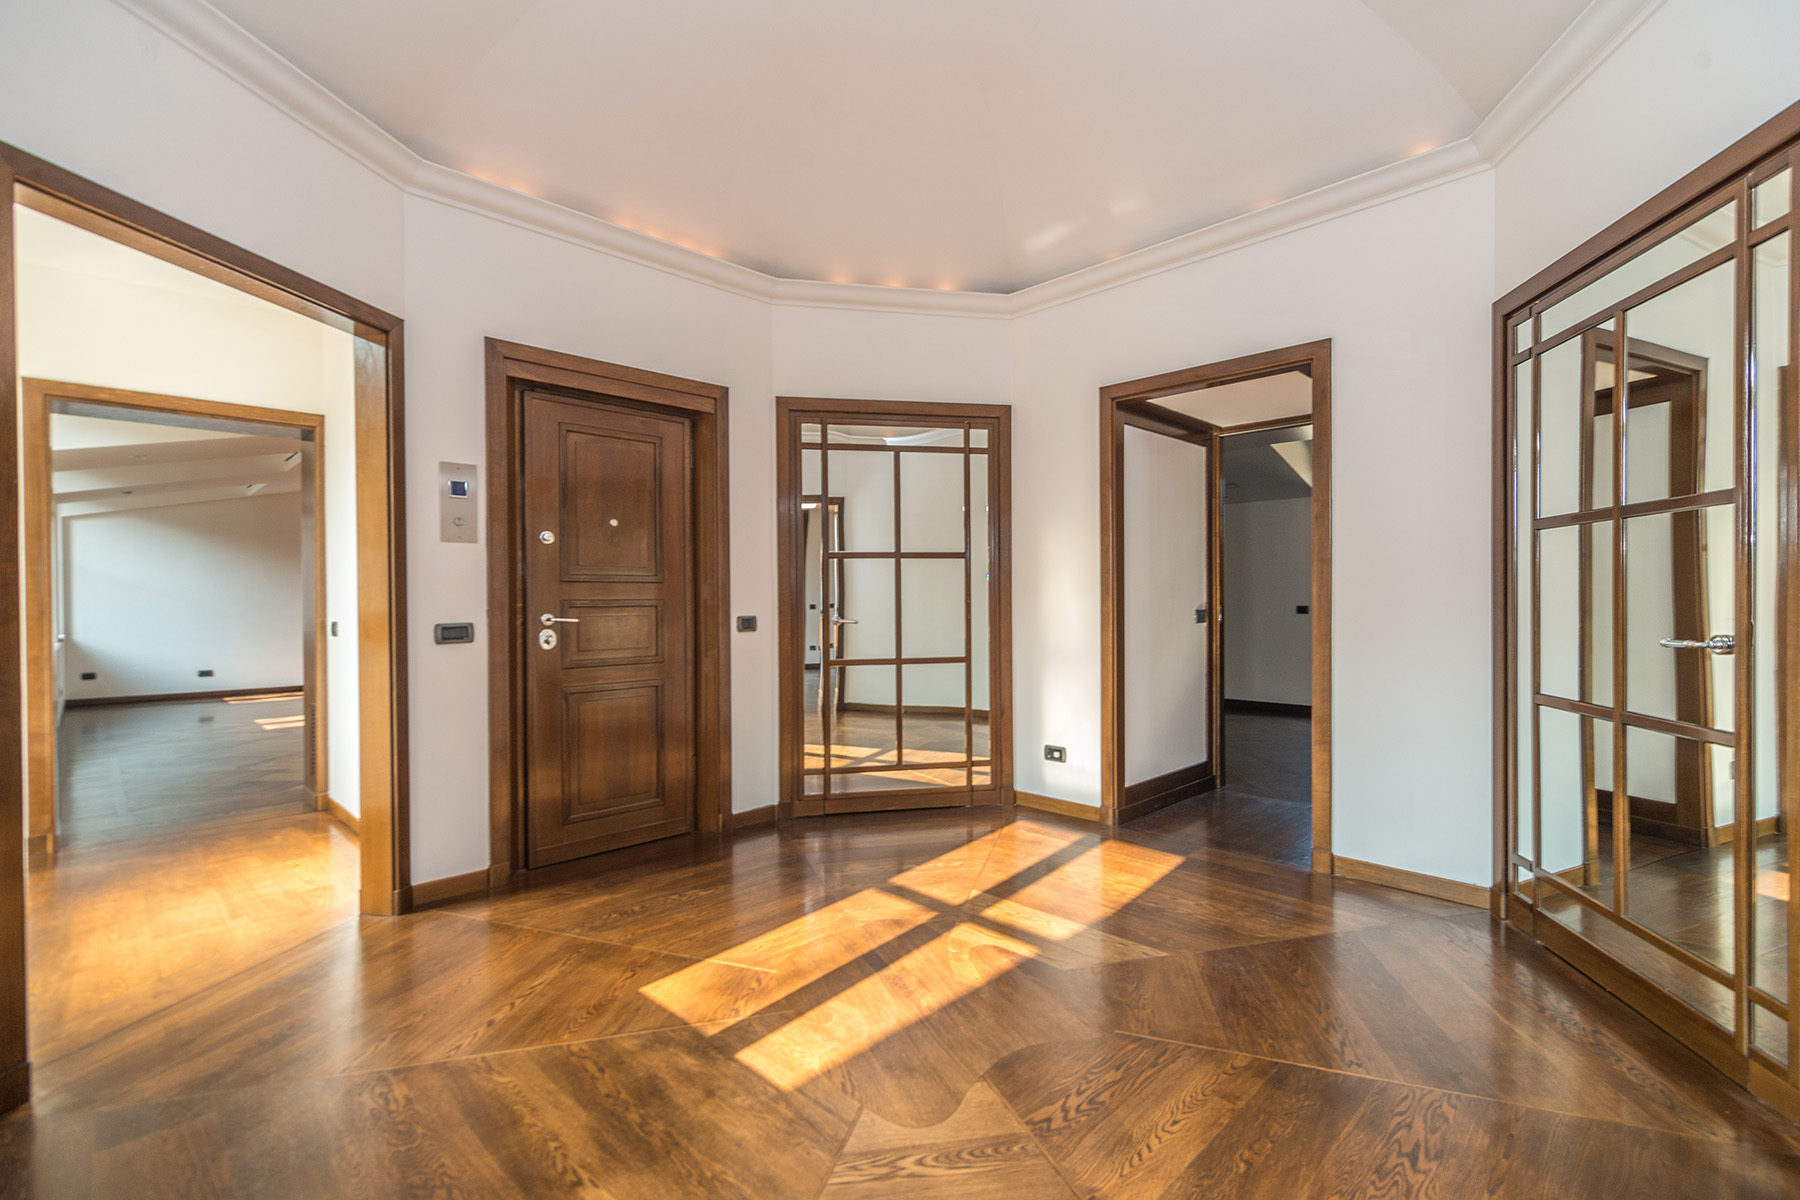 Apartment for Sale at Exclusive penthouse with rooftop garden in Via della Spiga Milano, 20121 Italy